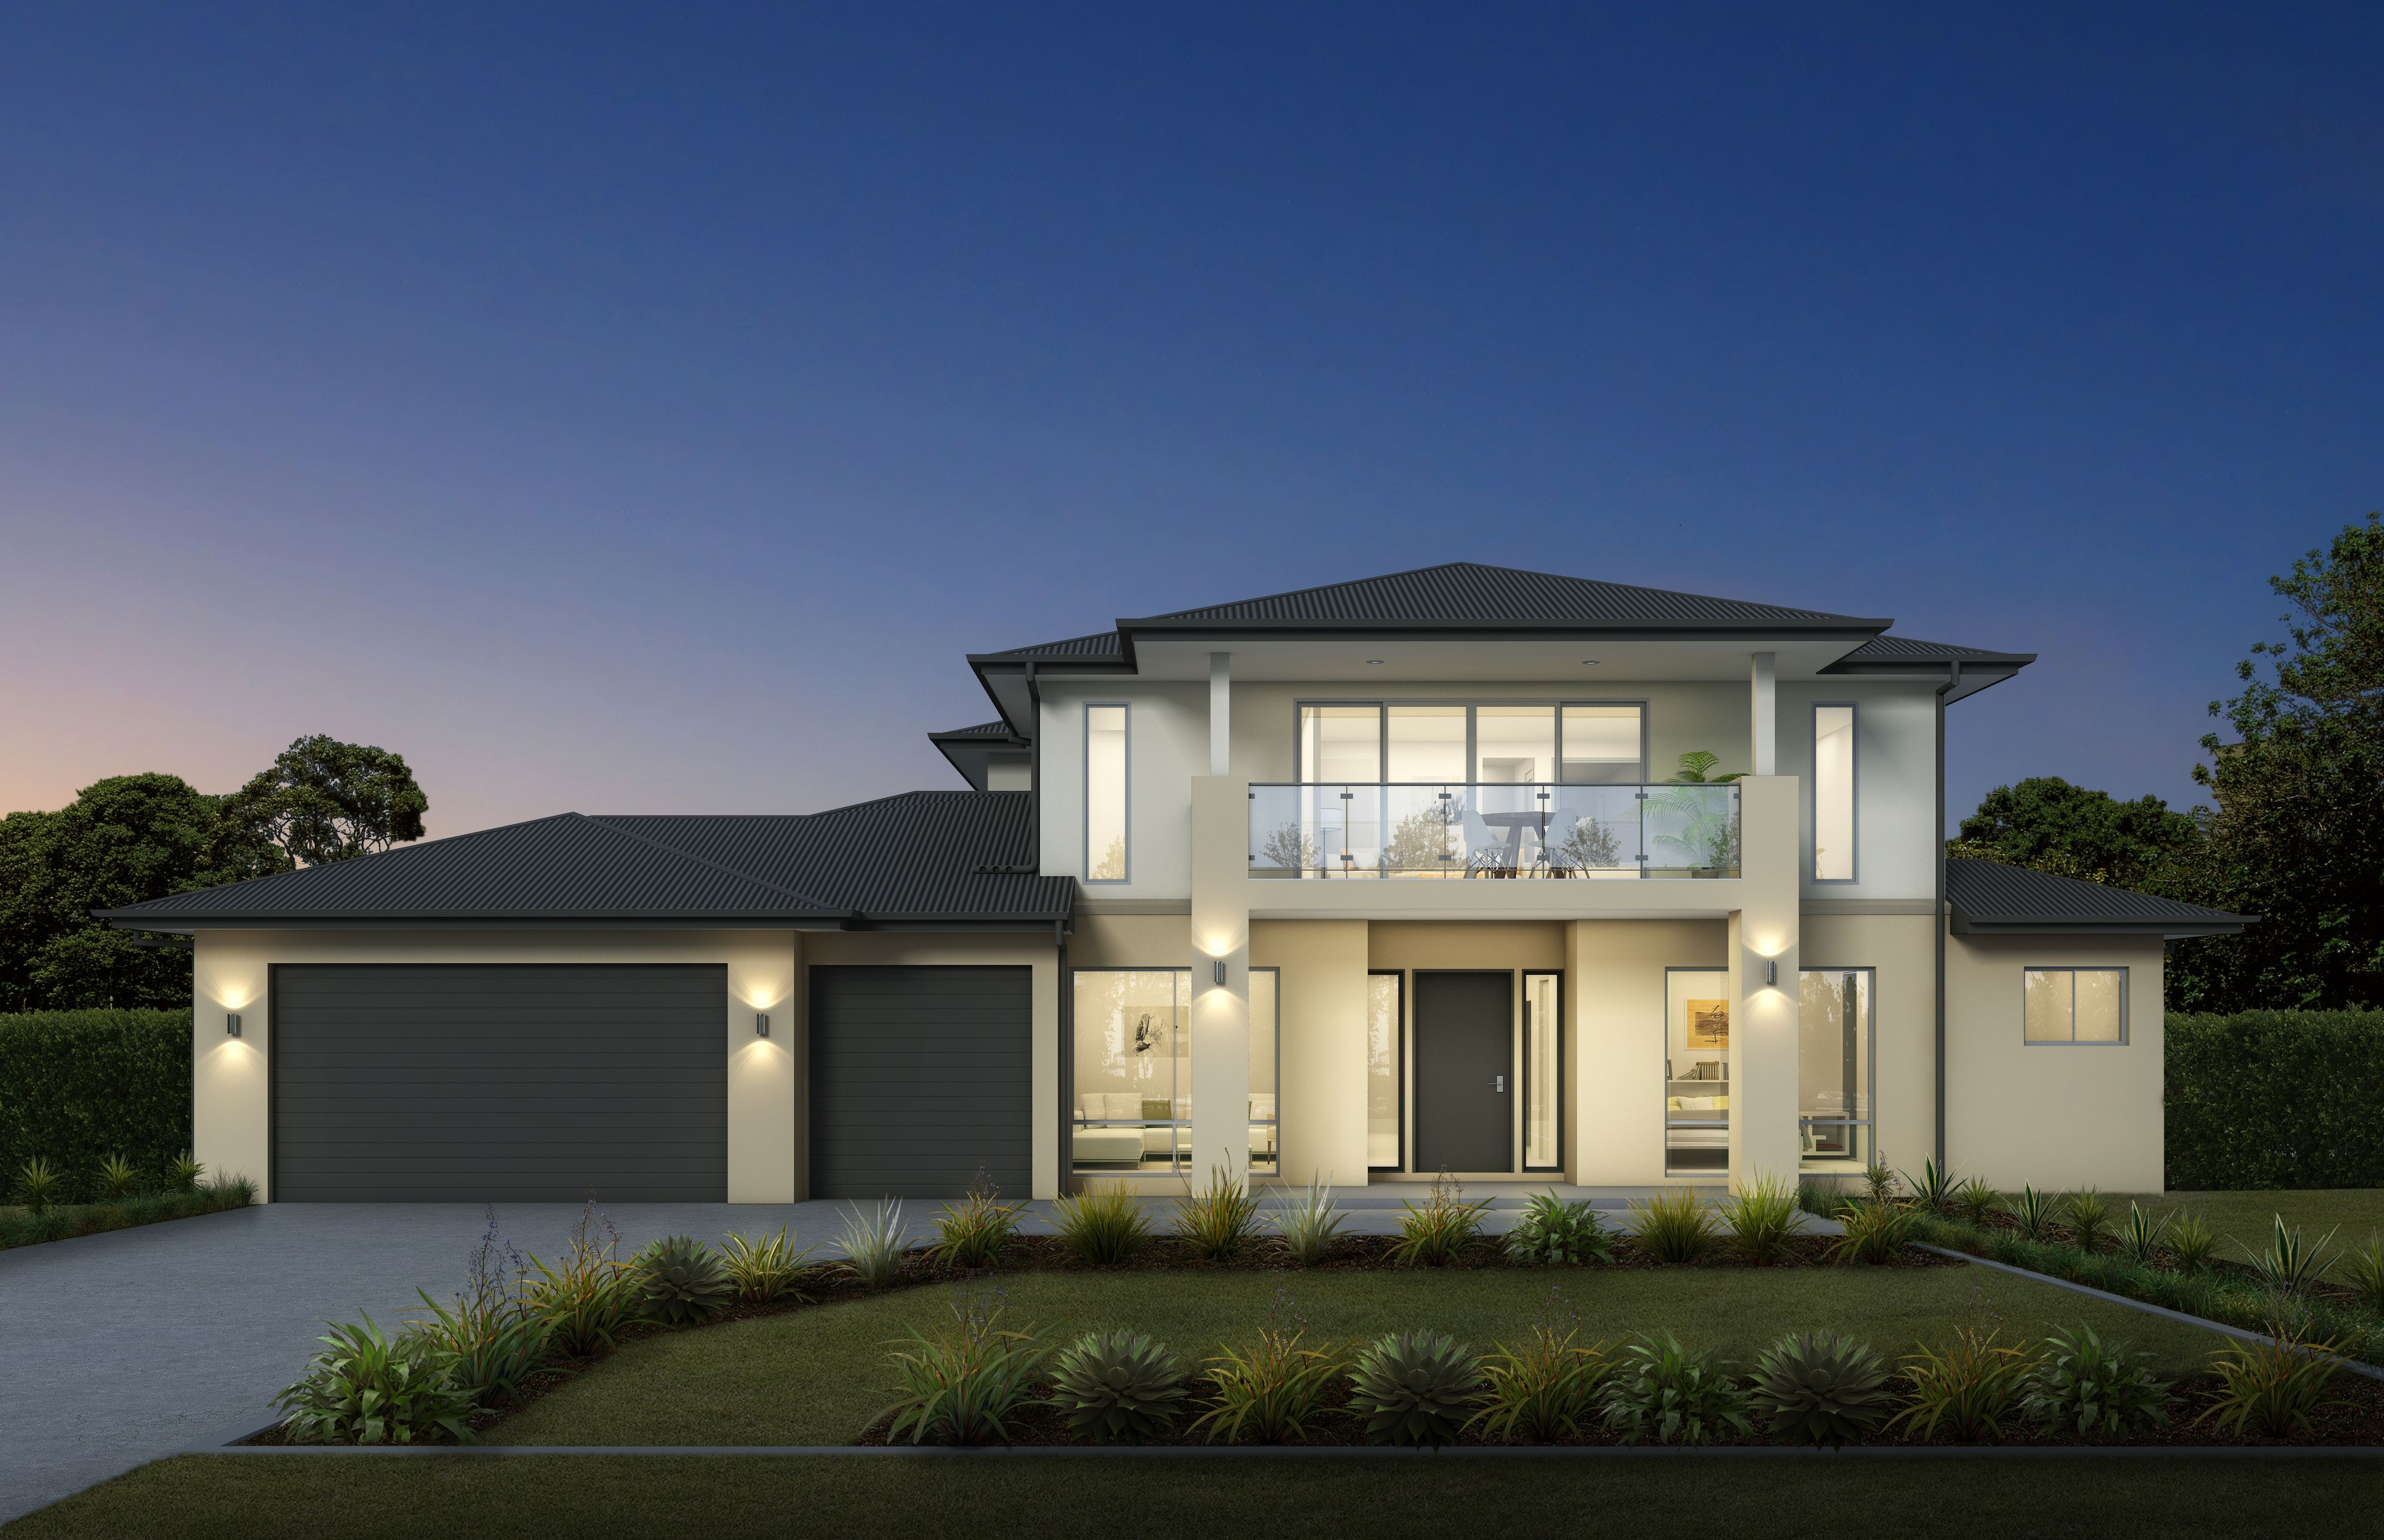 This massive four bedroom family home has all of the modern features plus many luxury options included entering the home you have a large open study to your left and a bedroom with built in robe and private ensuite to your right perfect for use as a guest bedroom or for older family members wanting more privacy